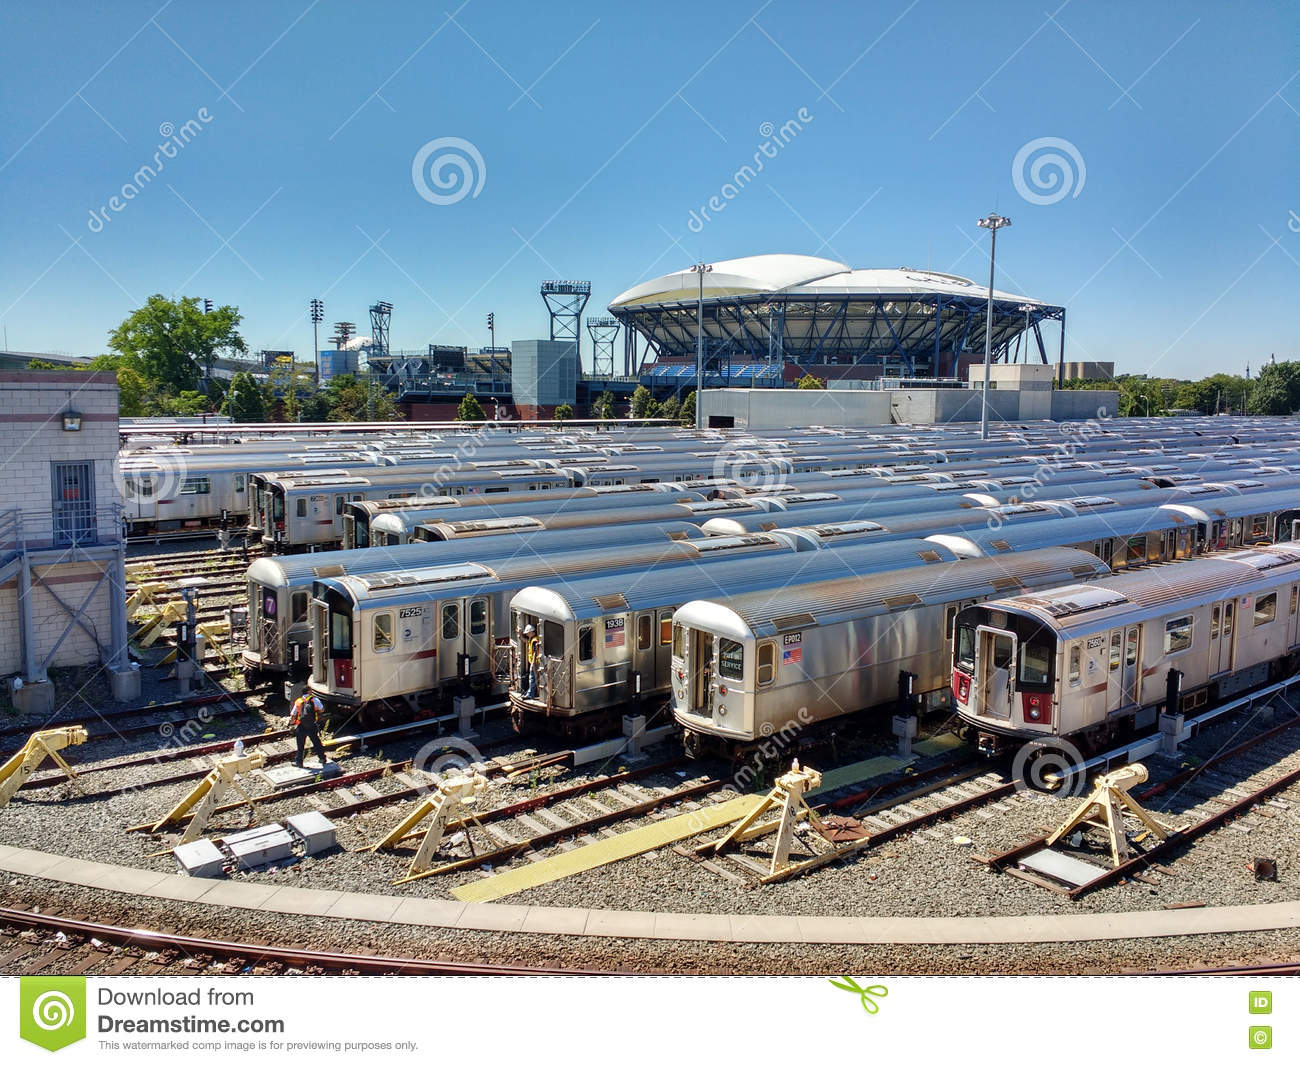 Arthur Ashe Tennis Stadium van Corona Rail Yard, New York, de V.S.